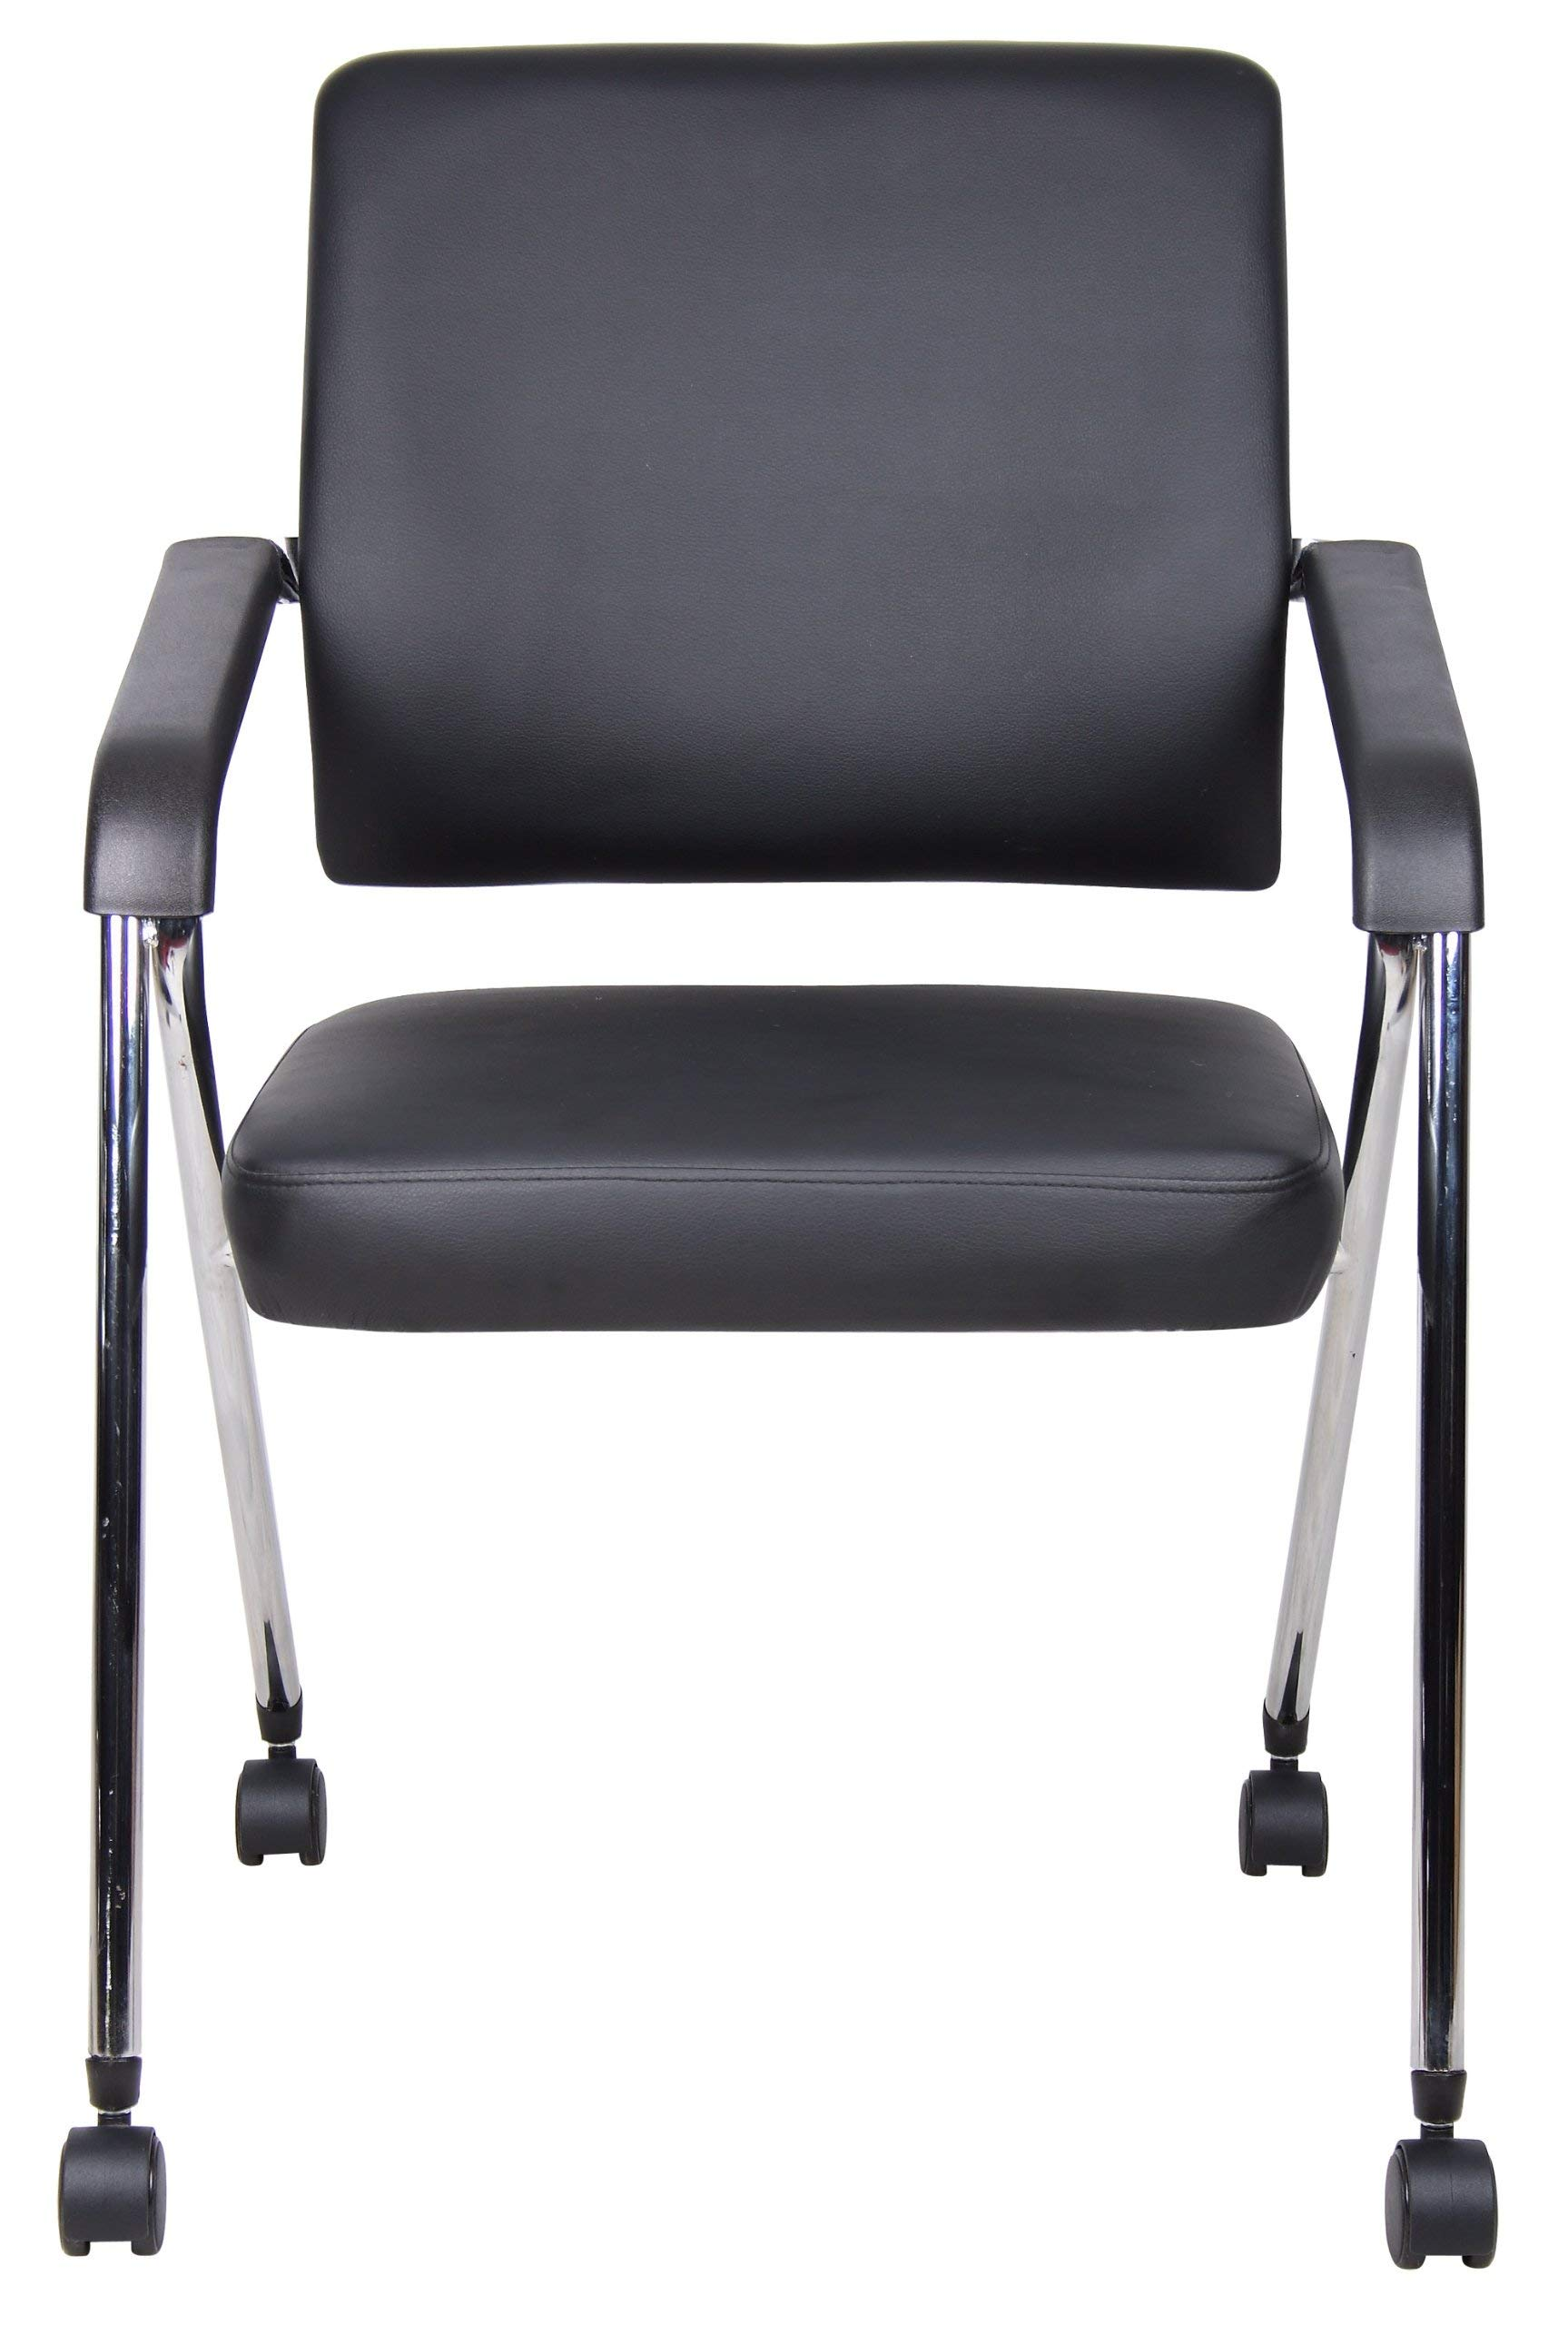 Boss Office Products B1800-CP-2 Caressoft Plus Training Chair 2 Pack in Grey